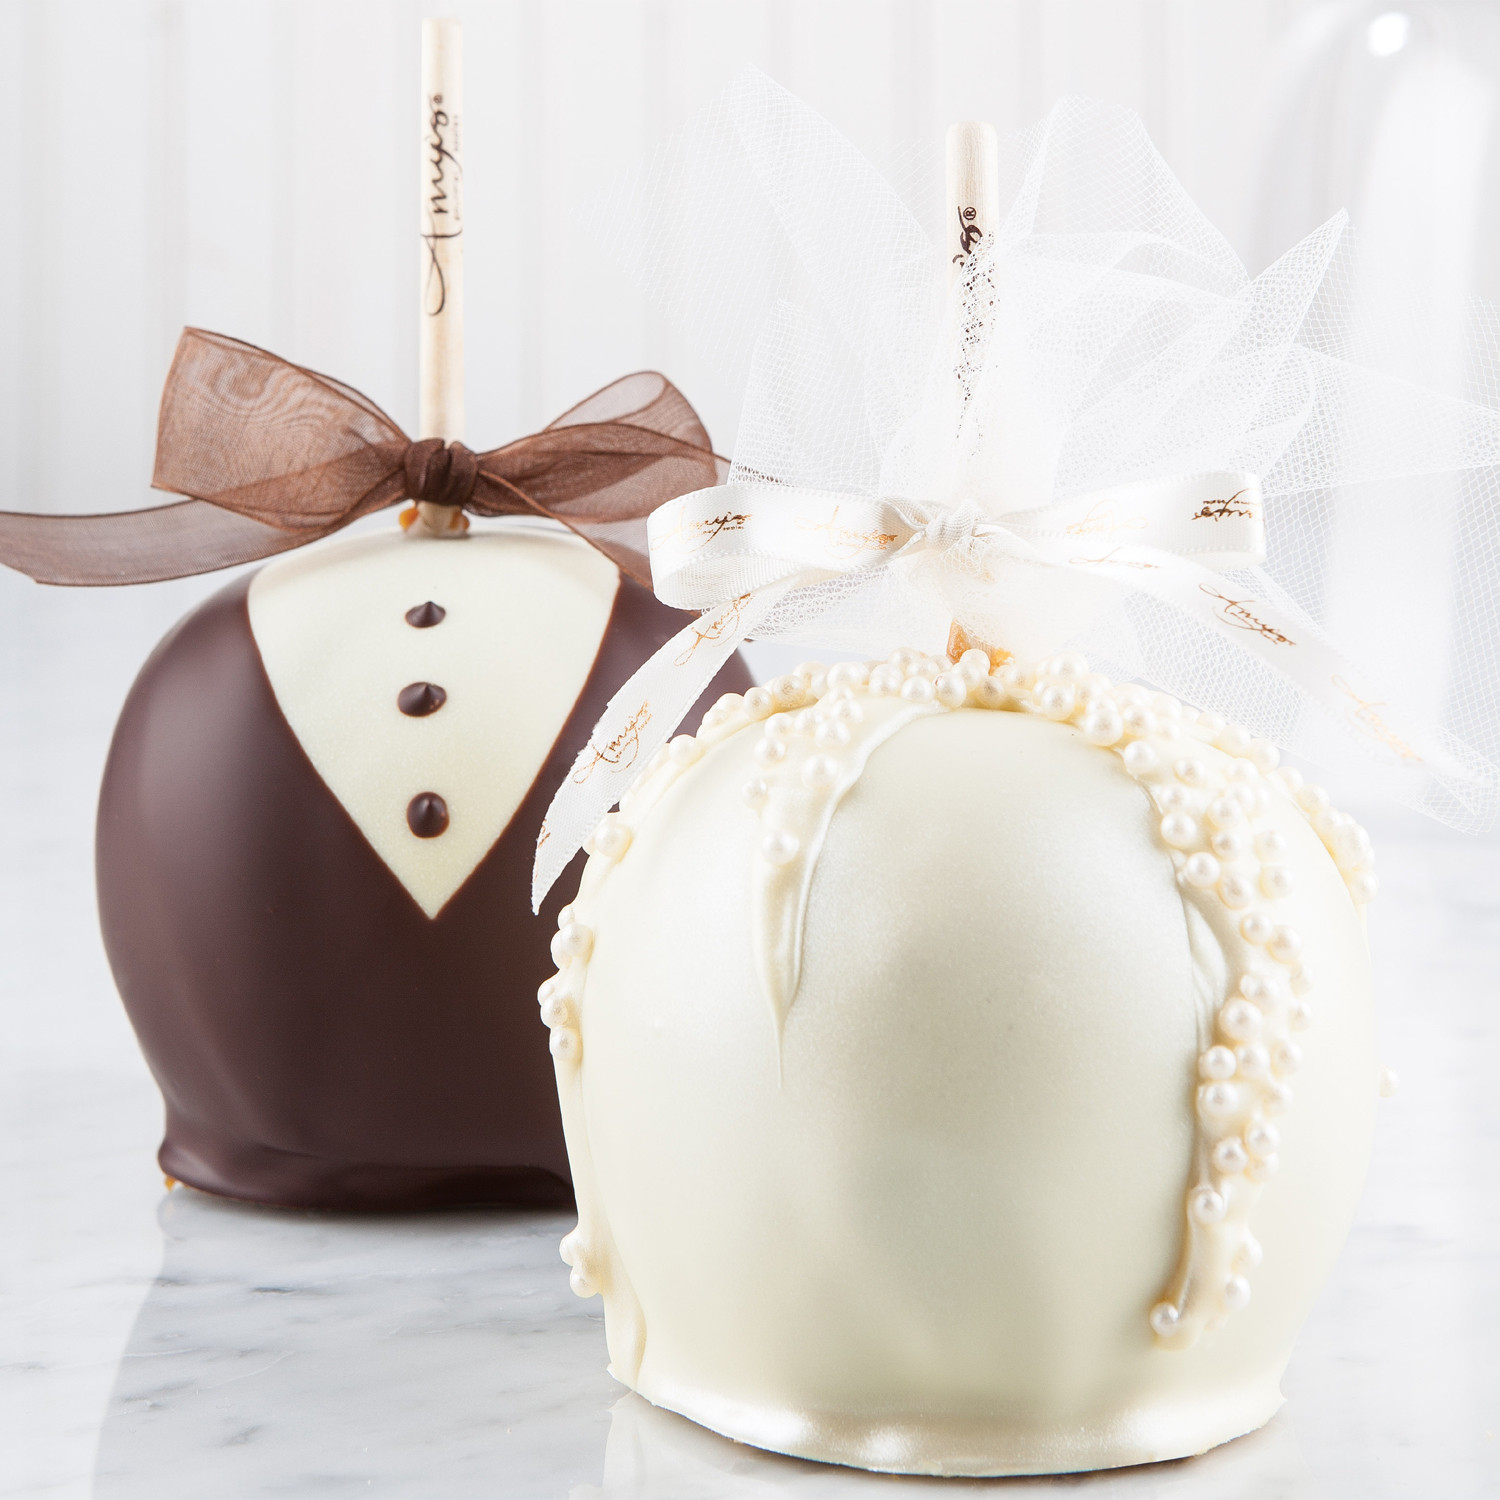 Bride and Groom Candy Apples | Caramel Apple Wedding Favors